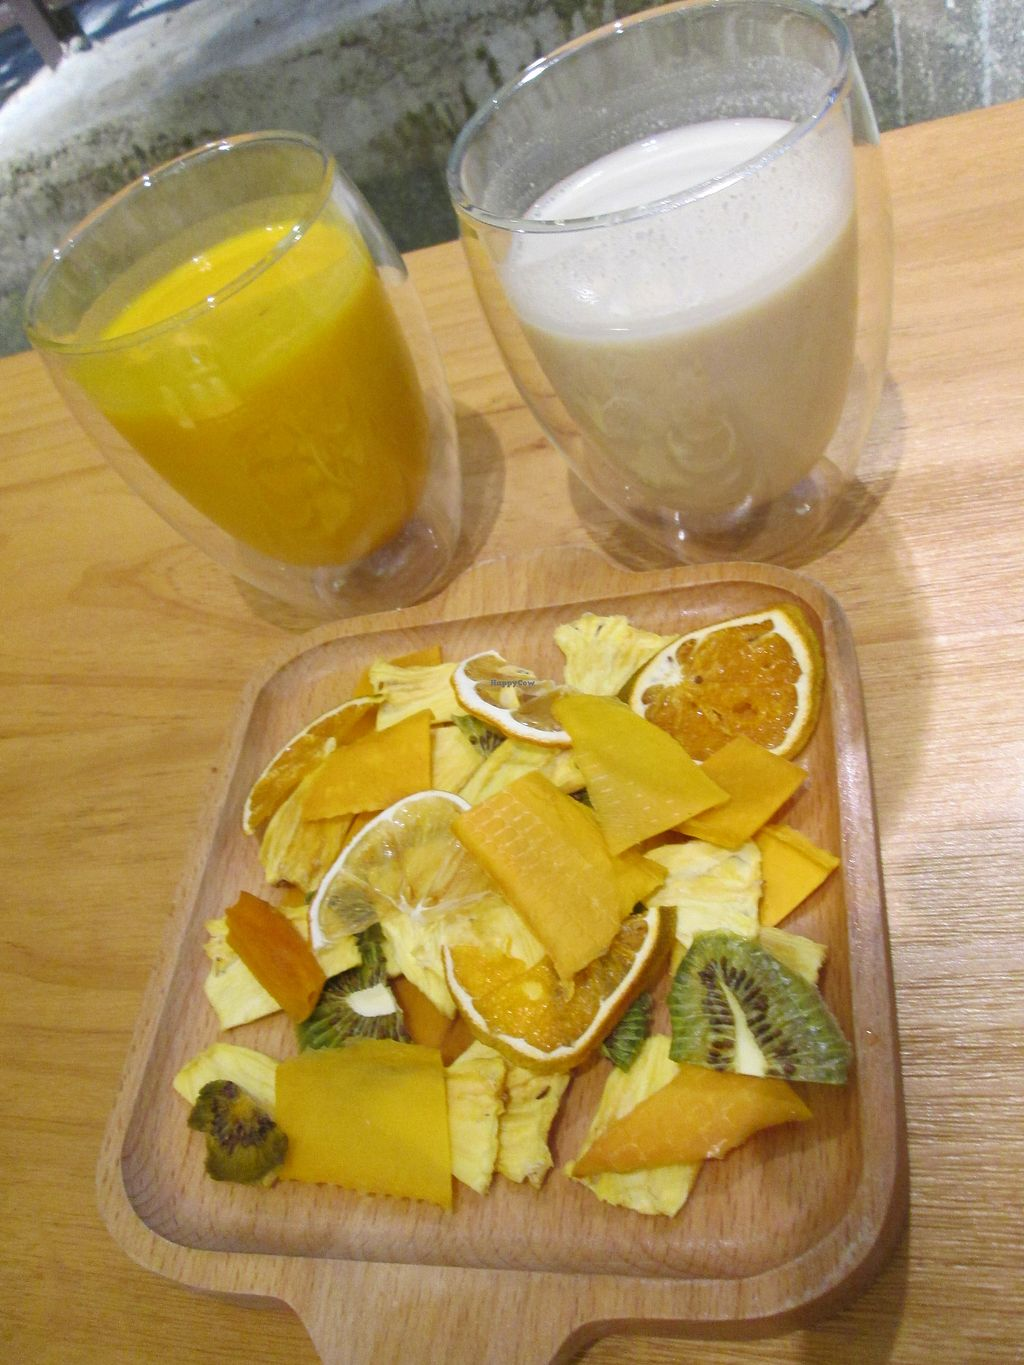 "Photo of Green Market  by <a href=""/members/profile/vitalvegan"">vitalvegan</a> <br/>Soymilk drink and Pumpkin and coconut drink along with dried fruit plate <br/> September 26, 2017  - <a href='/contact/abuse/image/101728/308691'>Report</a>"